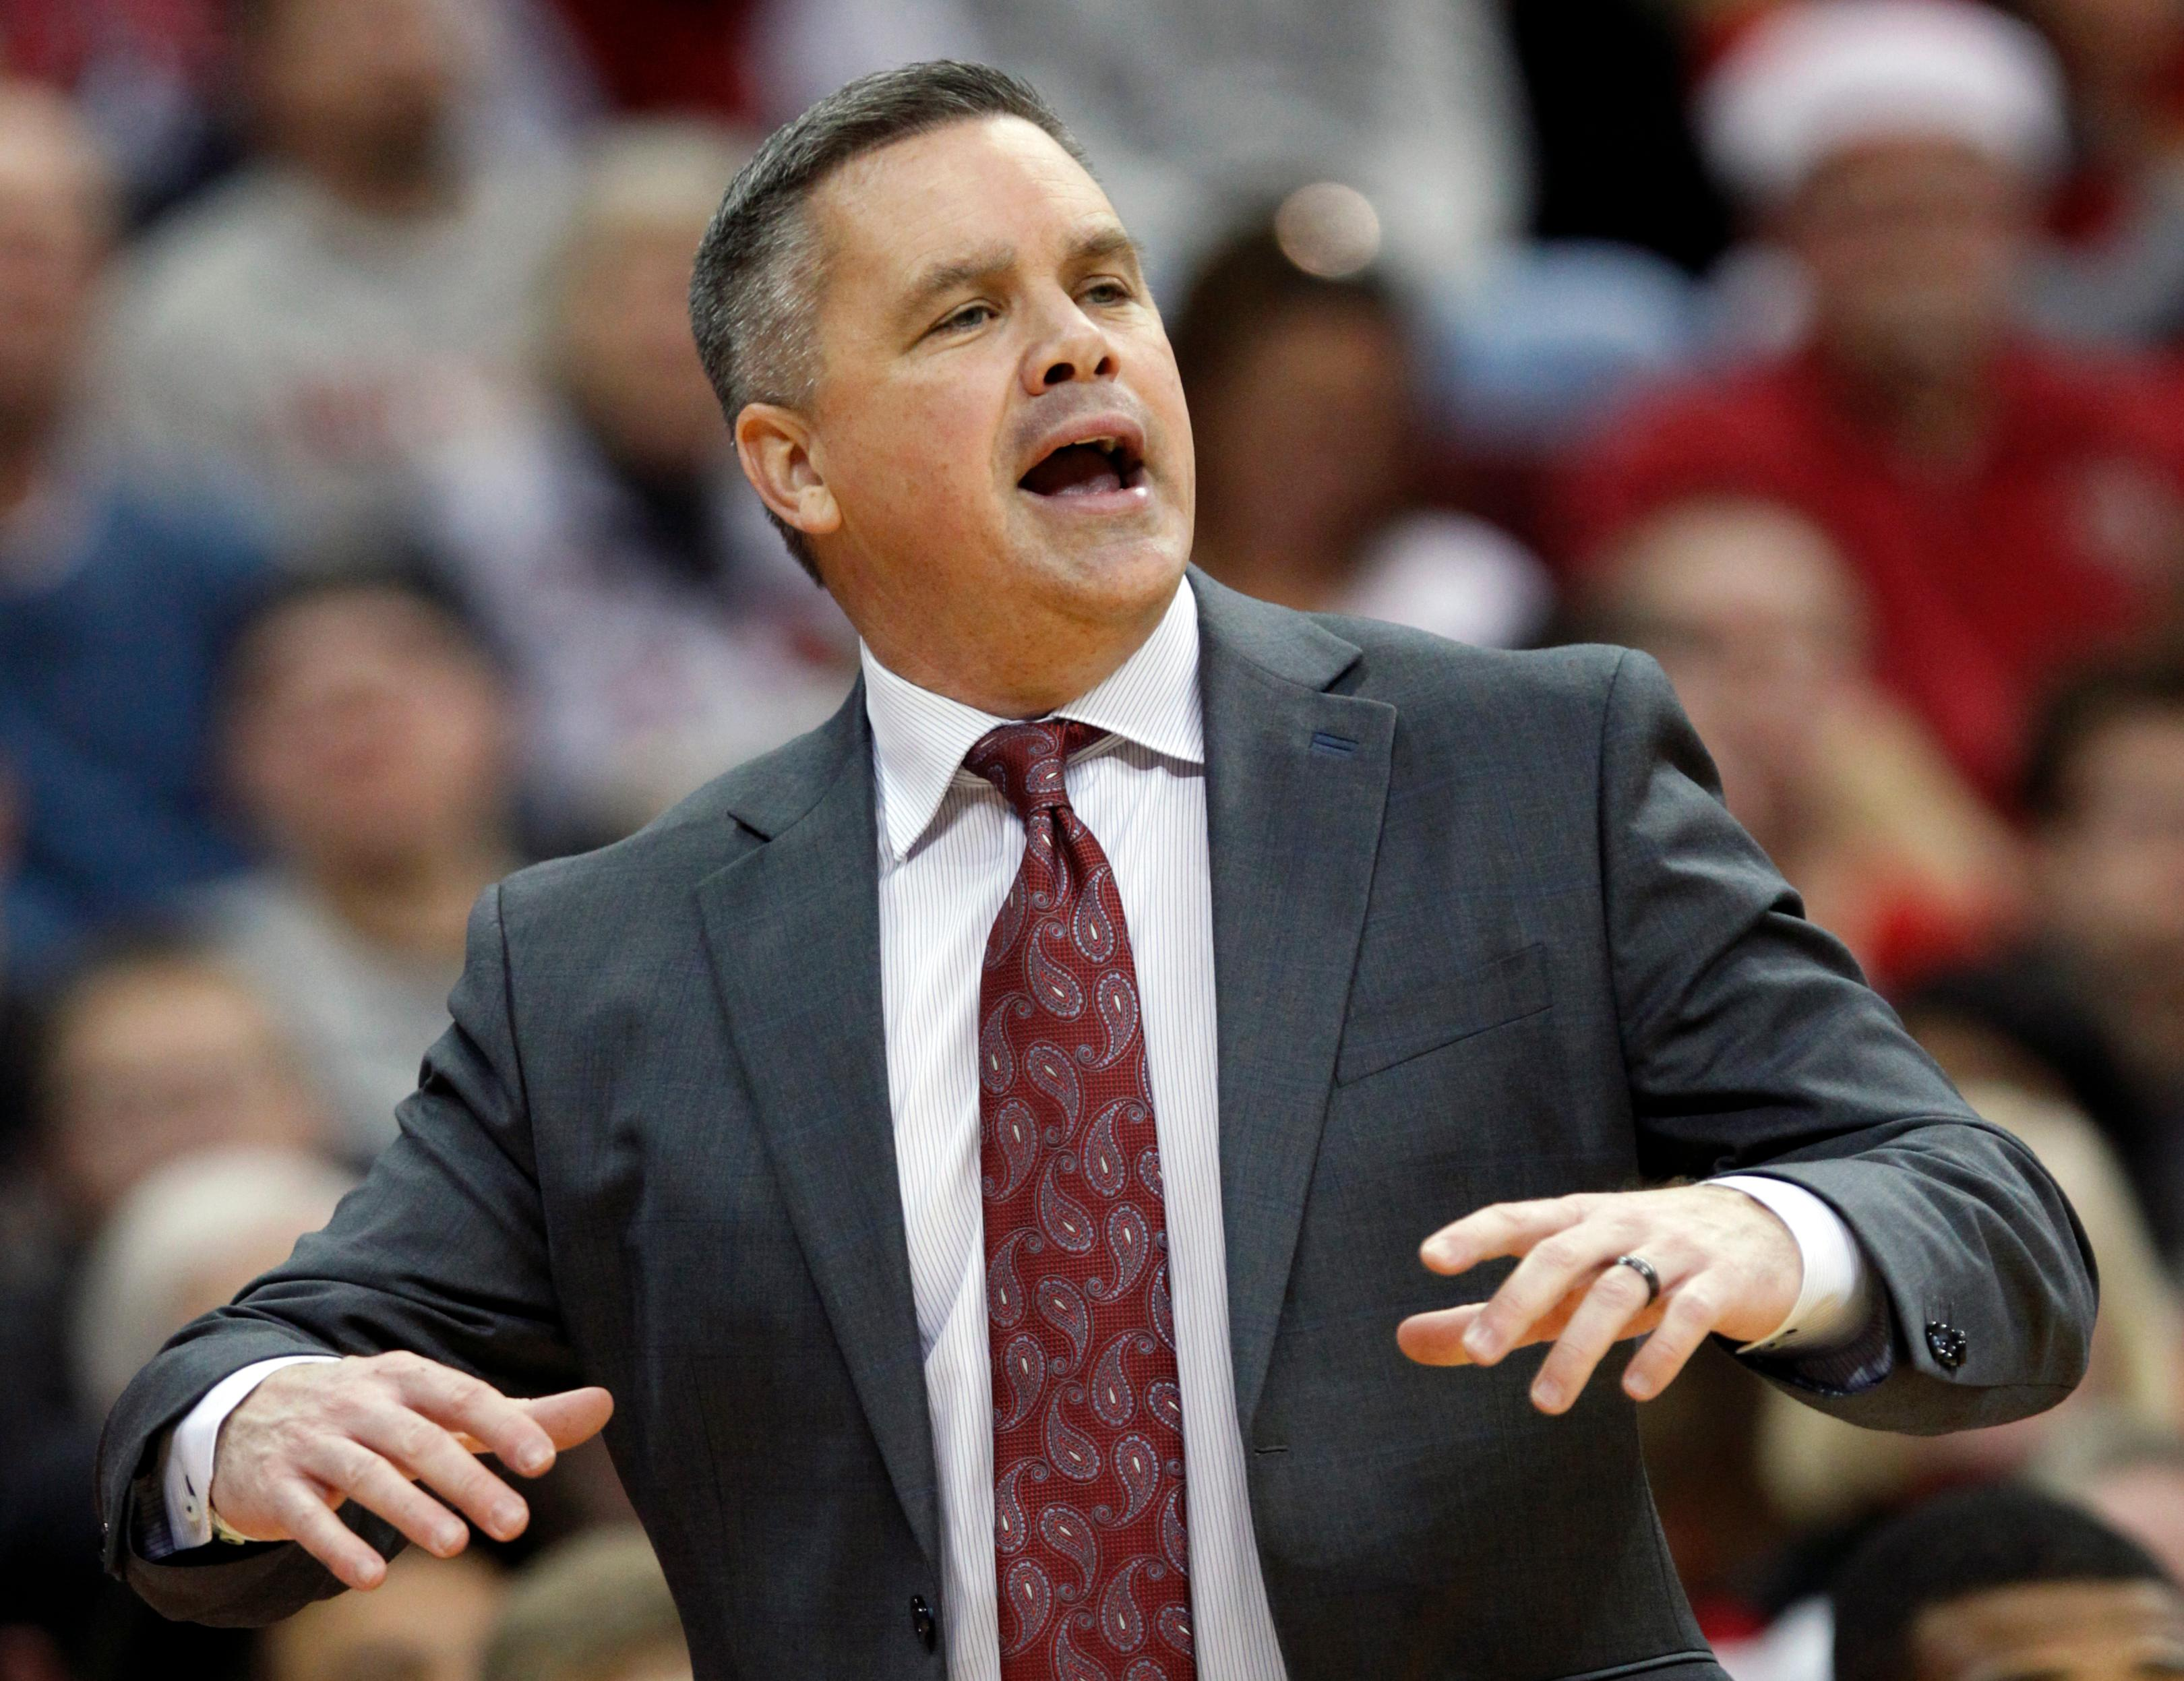 FILE - In this Dec. 16, 2017, file photo, Ohio State coach Chris Holtmann directs his team against Appalachian State during the second half of an NCAA college basketball game, in Columbus, Ohio. Ohio State's Keita Bates-Diop is The Associated Press player of the year in the Big Ten Conference and the Buckeyes' Chris Holtmann is its coach of the year. Bates-Diop and Purdue's Carsen Edwards were unanimous picks to the AP All-Big Ten team, also announced Wednesday, Feb. 28, 2018, in voting by 12 journalists covering the conference. (AP Photo/Paul Vernon, File)